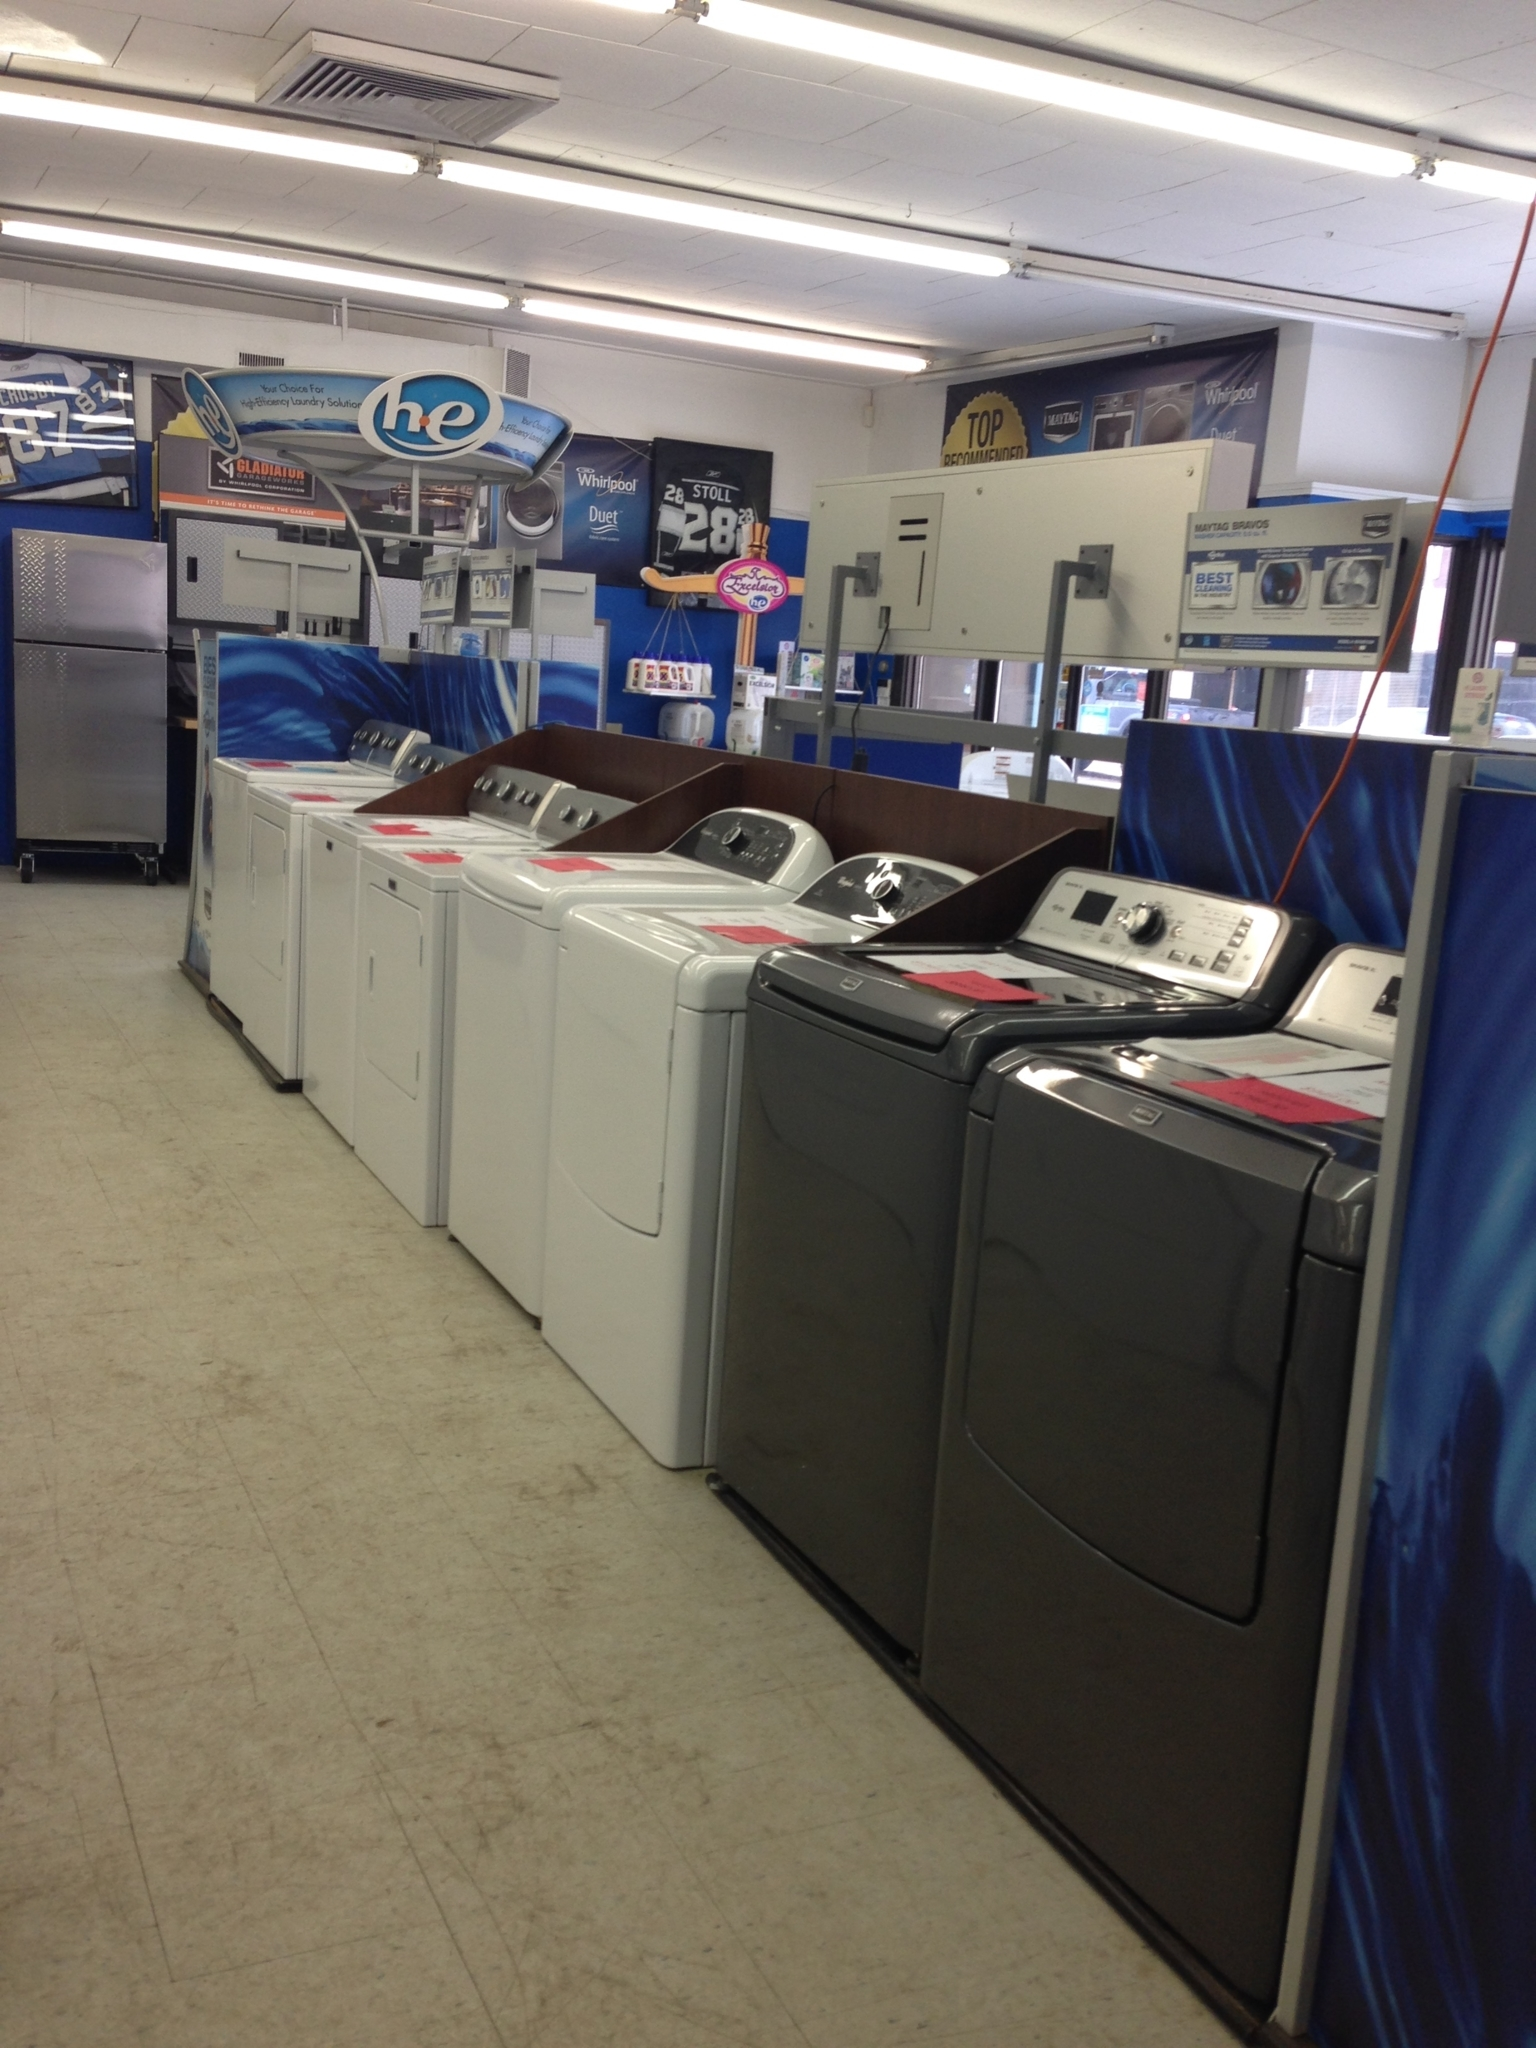 Thorsness Appliance & Bed Store in Yorkton